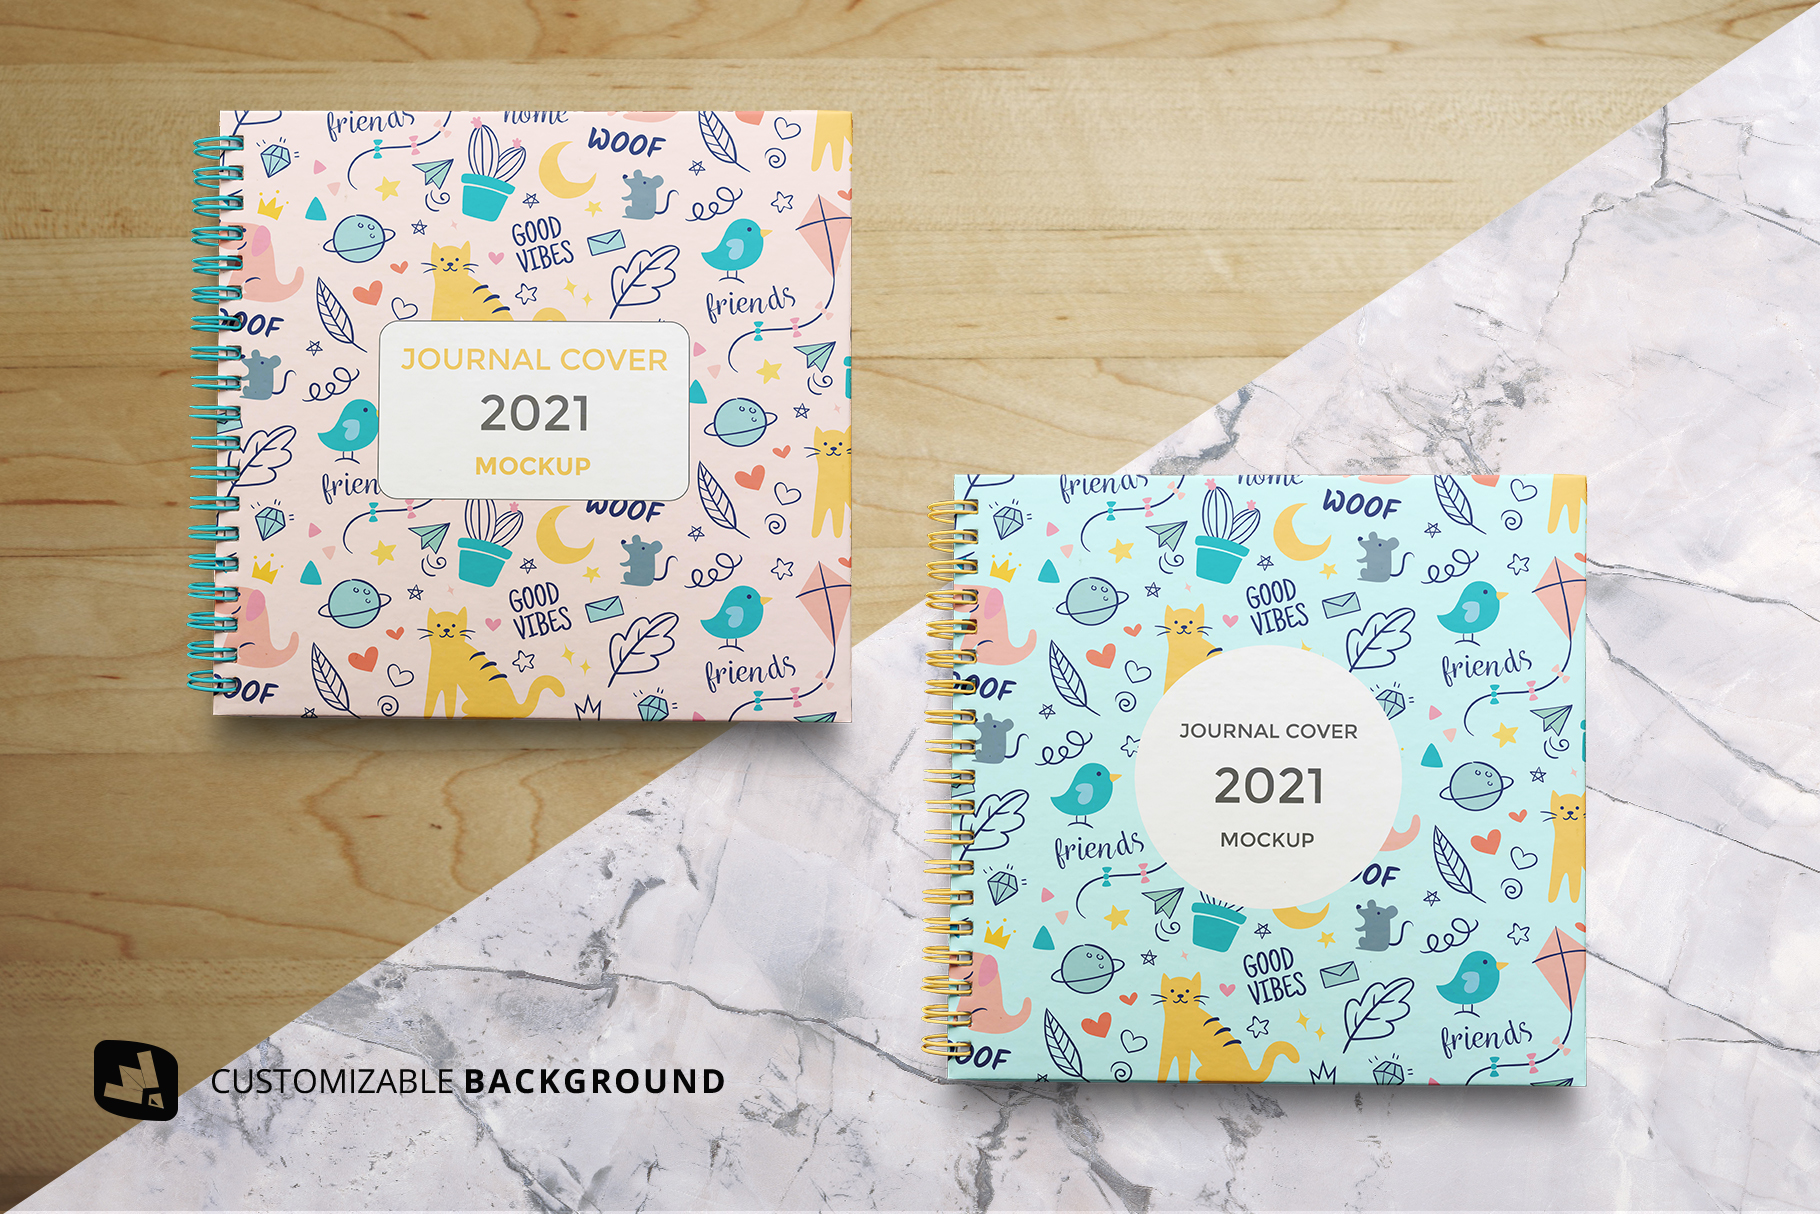 background options of the top view spiral journal cover mockup